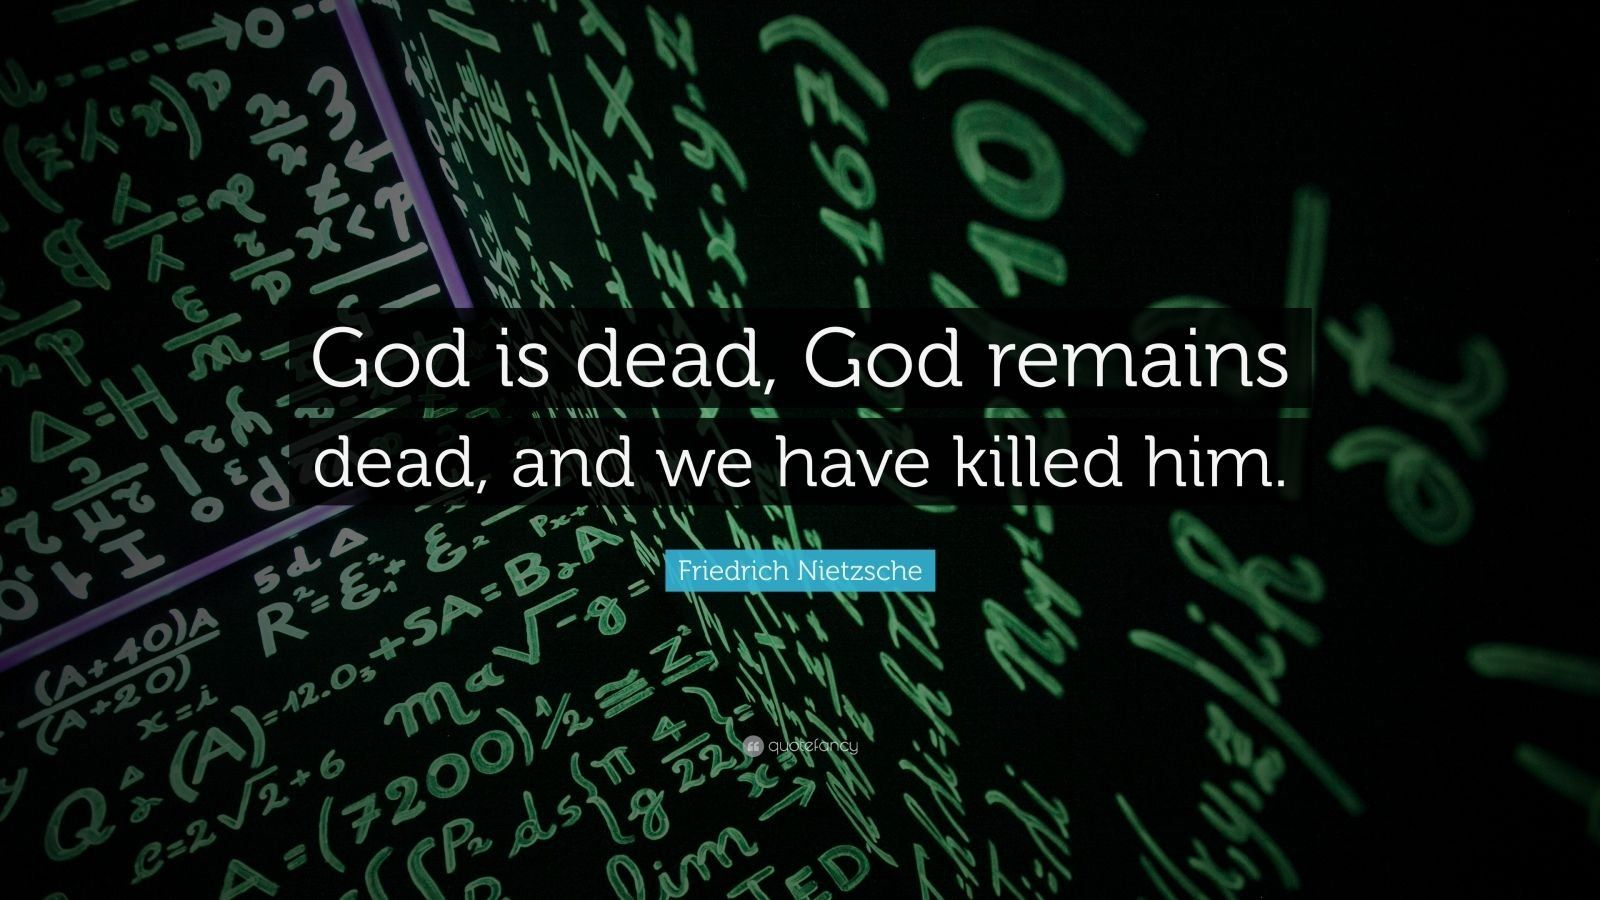 God Is Dead God Remains Dead And We Have Killed Him Friedrich Nietzsche Quotefancy Wallpapers With Inspirational Q Science Quotes Mathematics Science